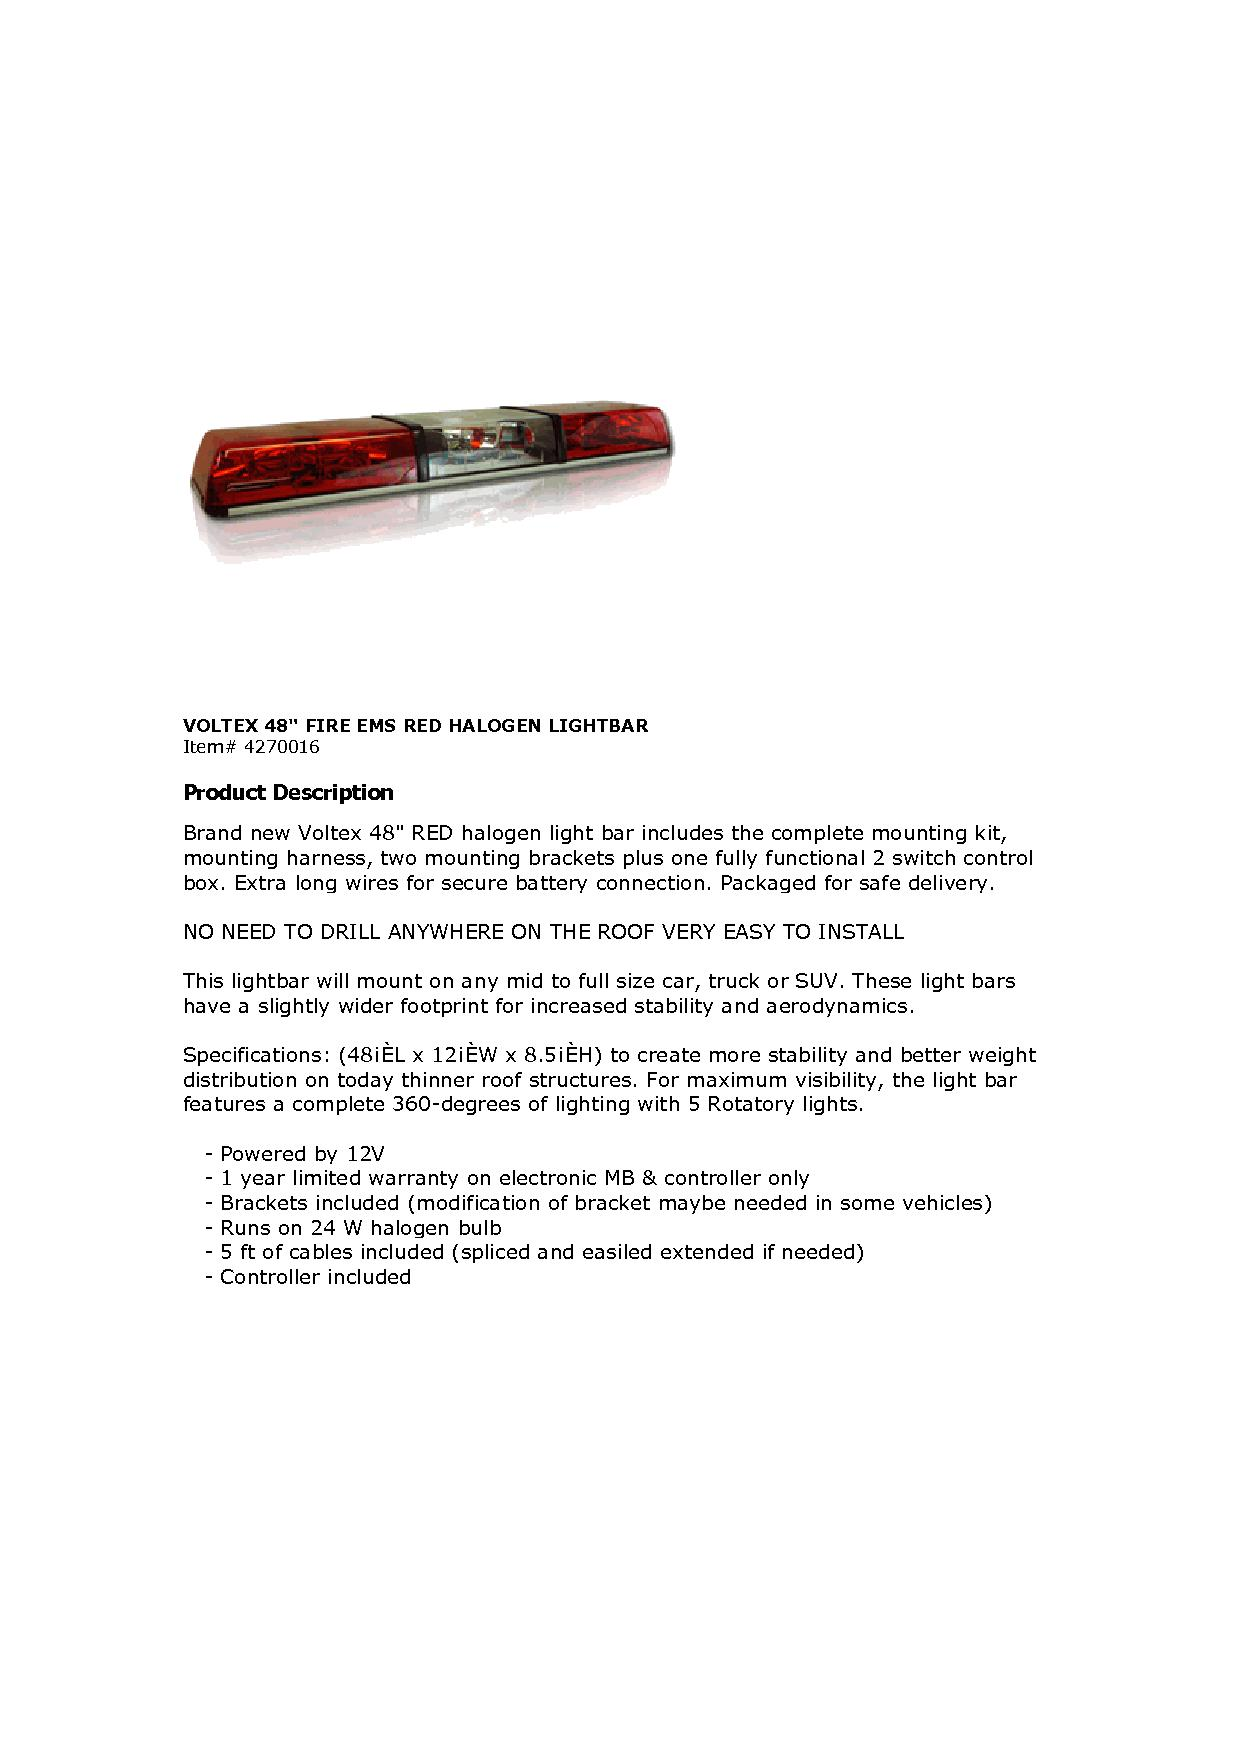 Contact your distributor about getting lightbars